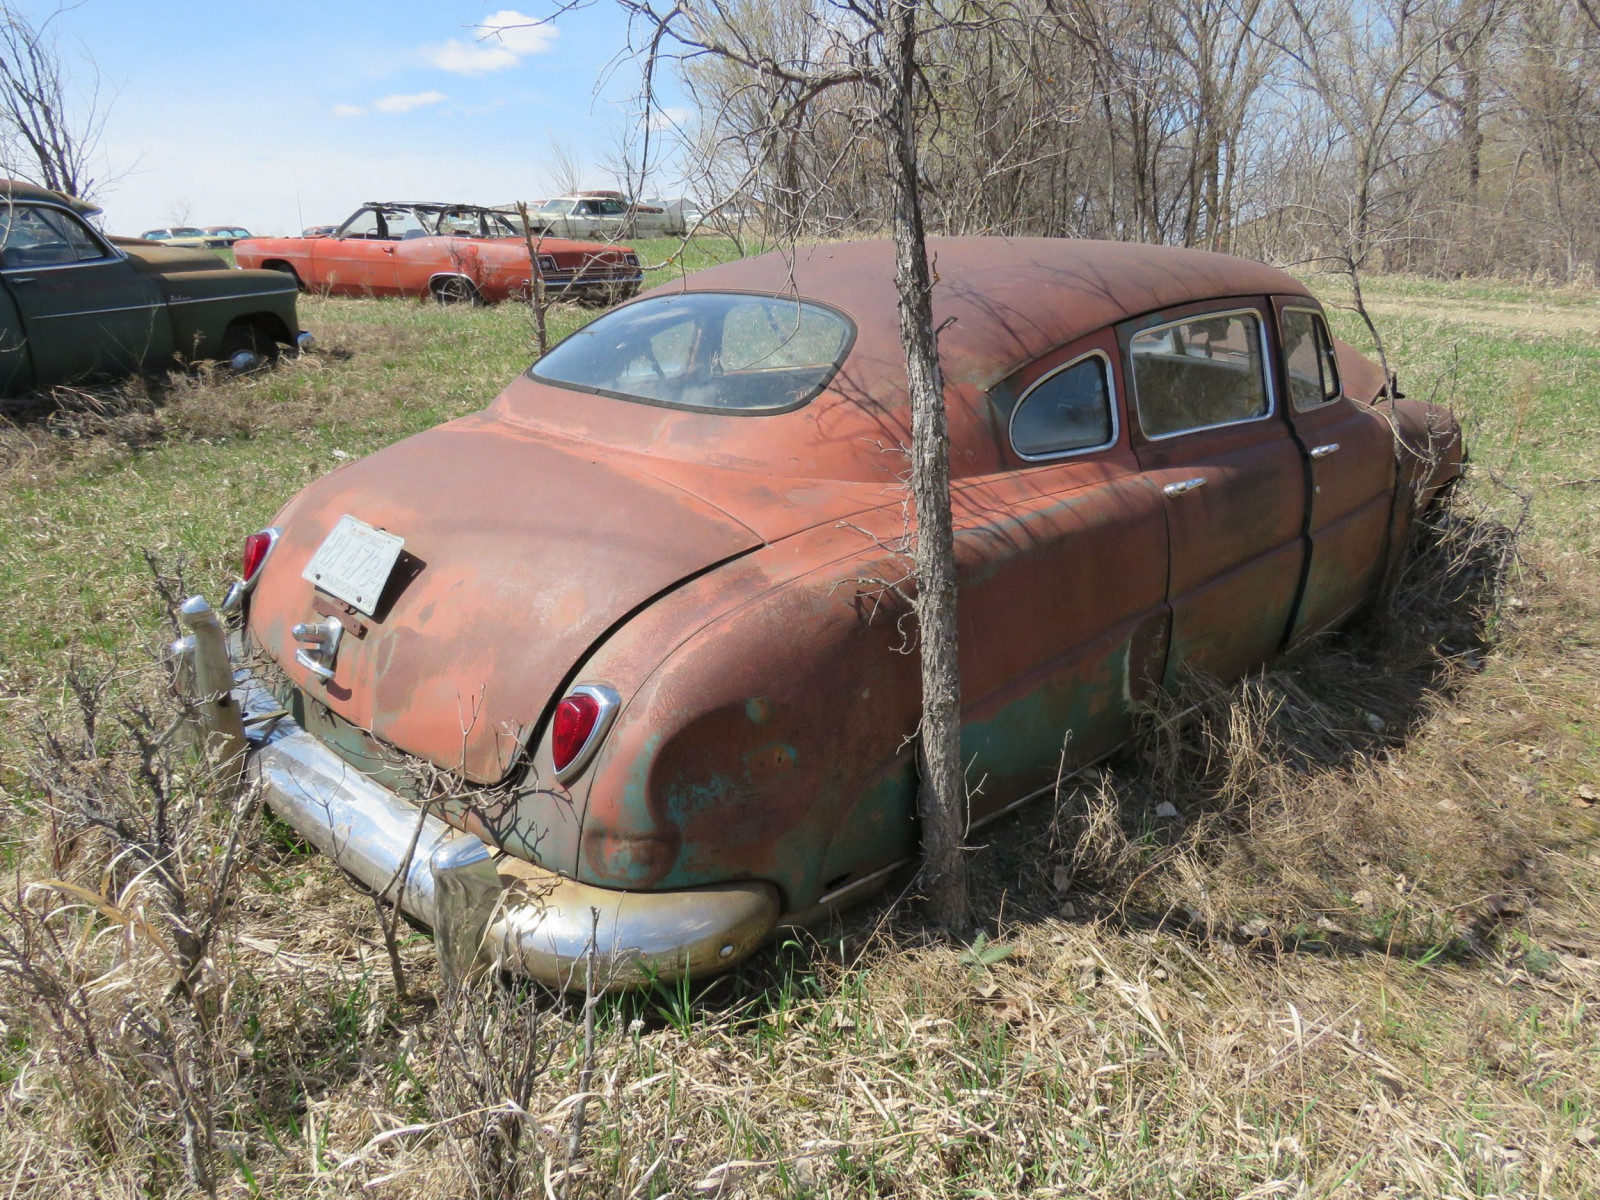 1949/50 Hudson 4dr Sedan for Project or Parts - Image 4